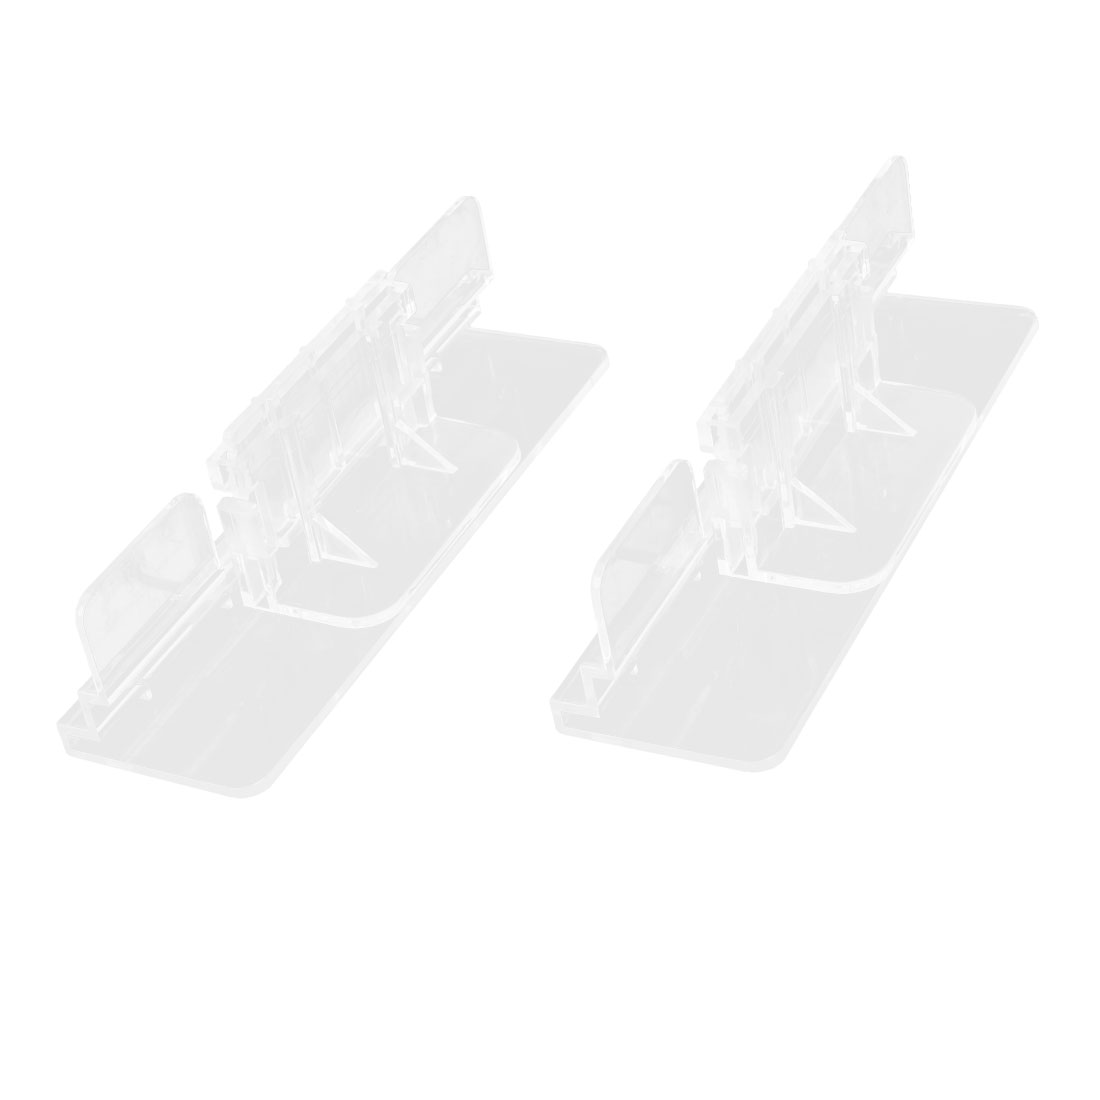 2 Pieces Clear Plastic Fish Tank Cover Clip for 4-12mm Glass Thickness